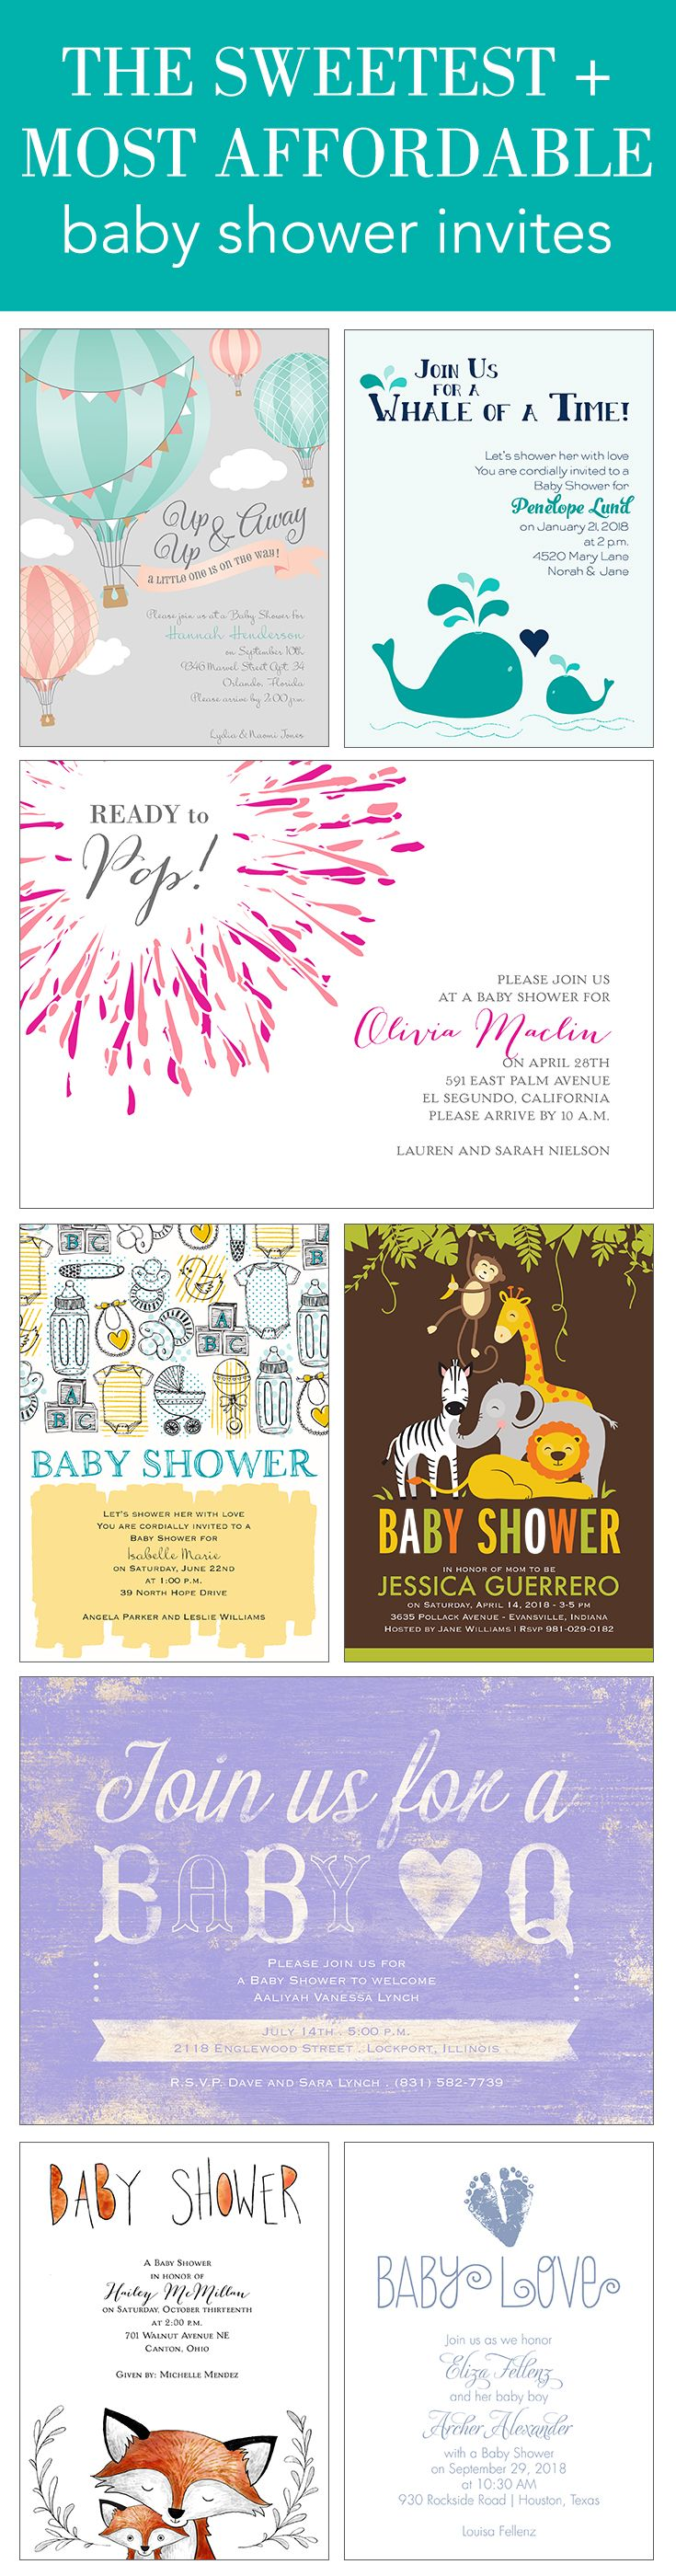 599 best Baby shower ideas images on Pinterest